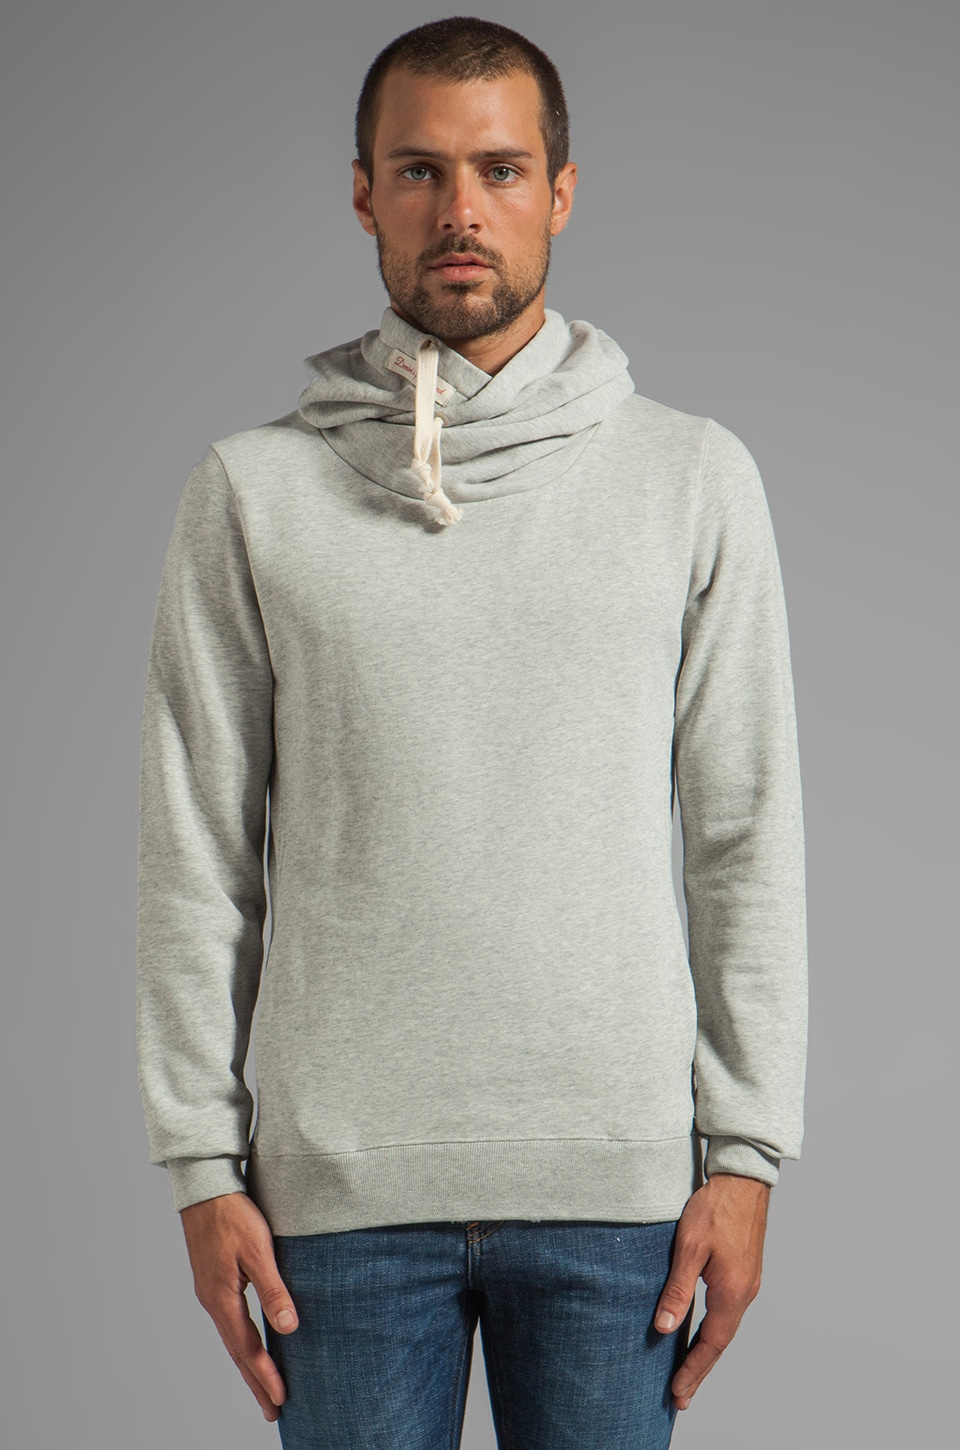 Scotch & Soda Home Alone Twisted Neck Hoodie in Ecru